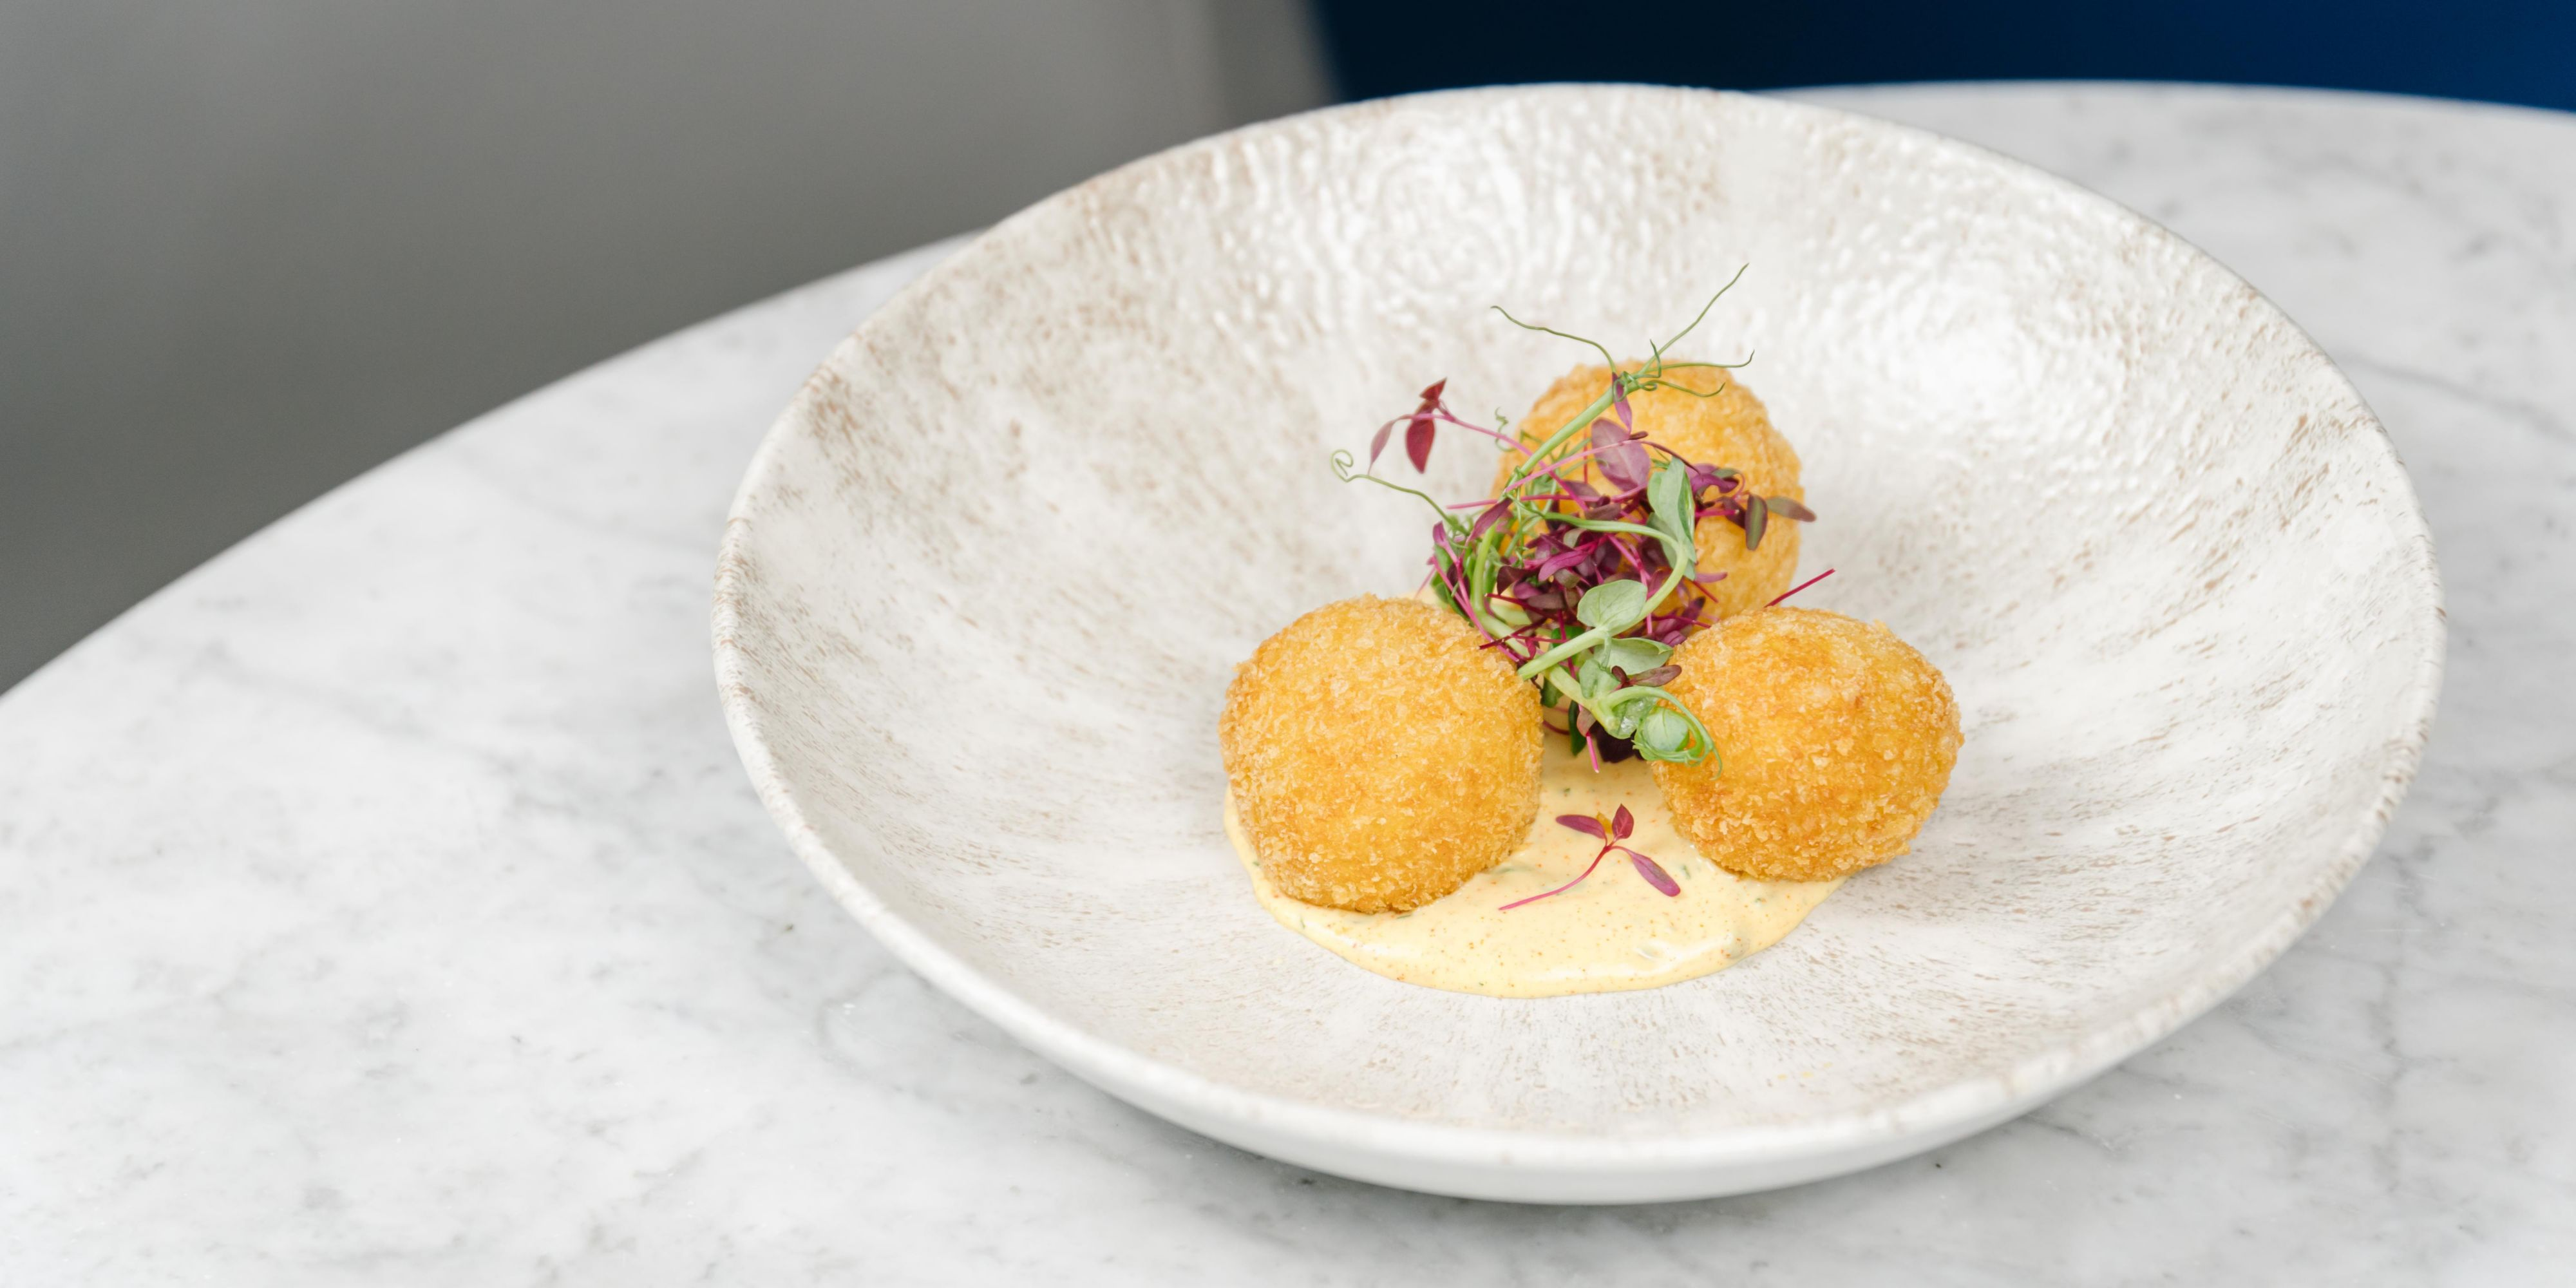 Enjoy a touch of Italian with our roasted squash arancini